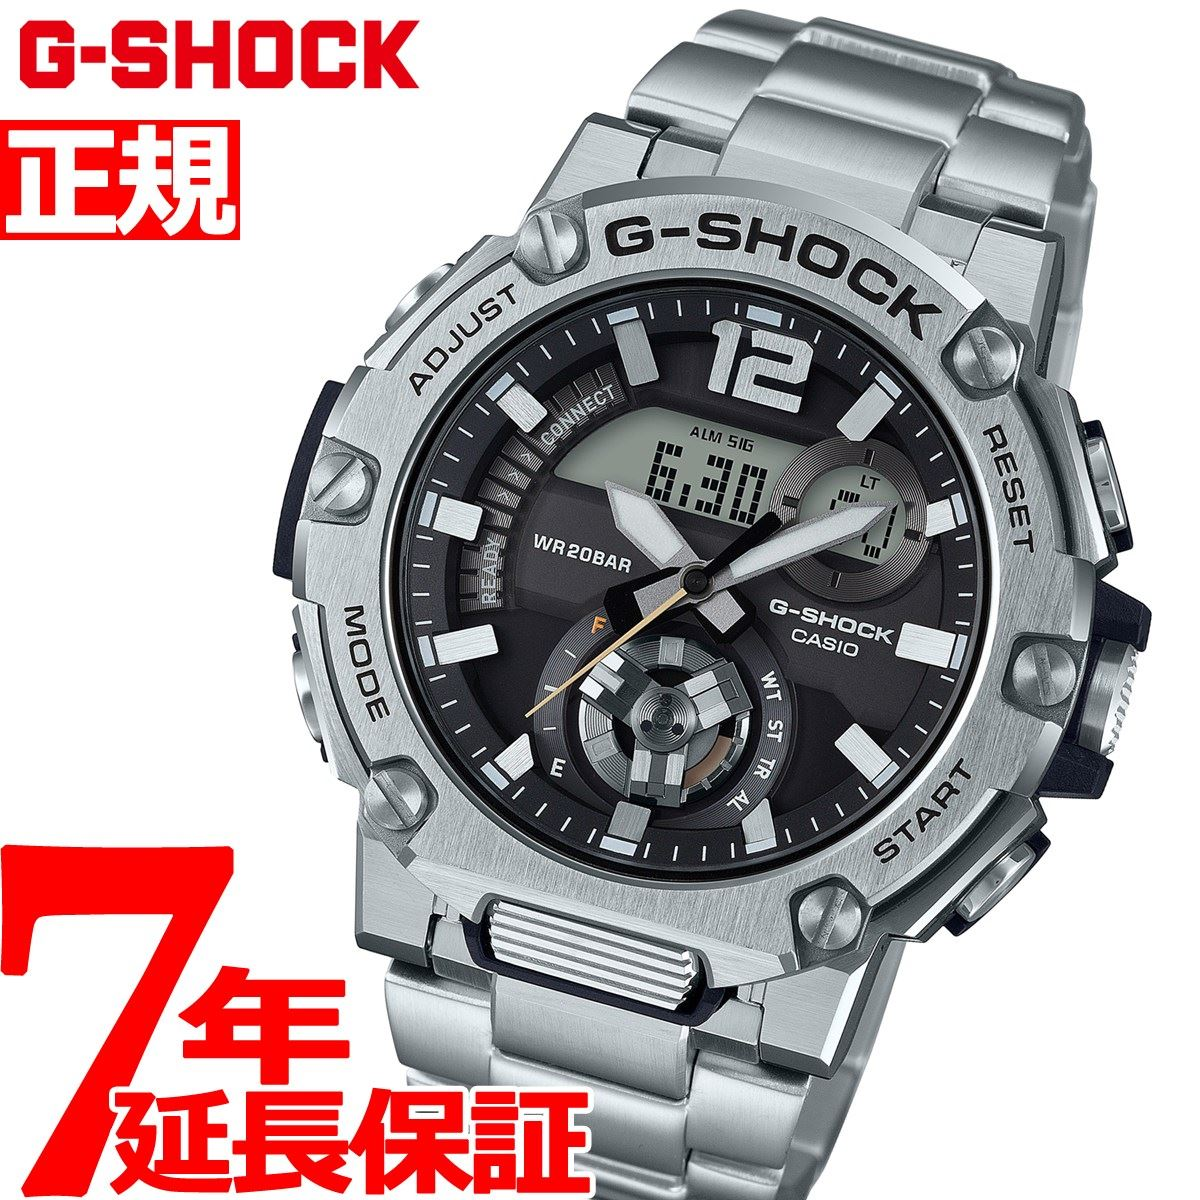 腕時計, メンズ腕時計 35G-SHOCK G-STEEL G G CASIO GST-B300SD-1AJF2020